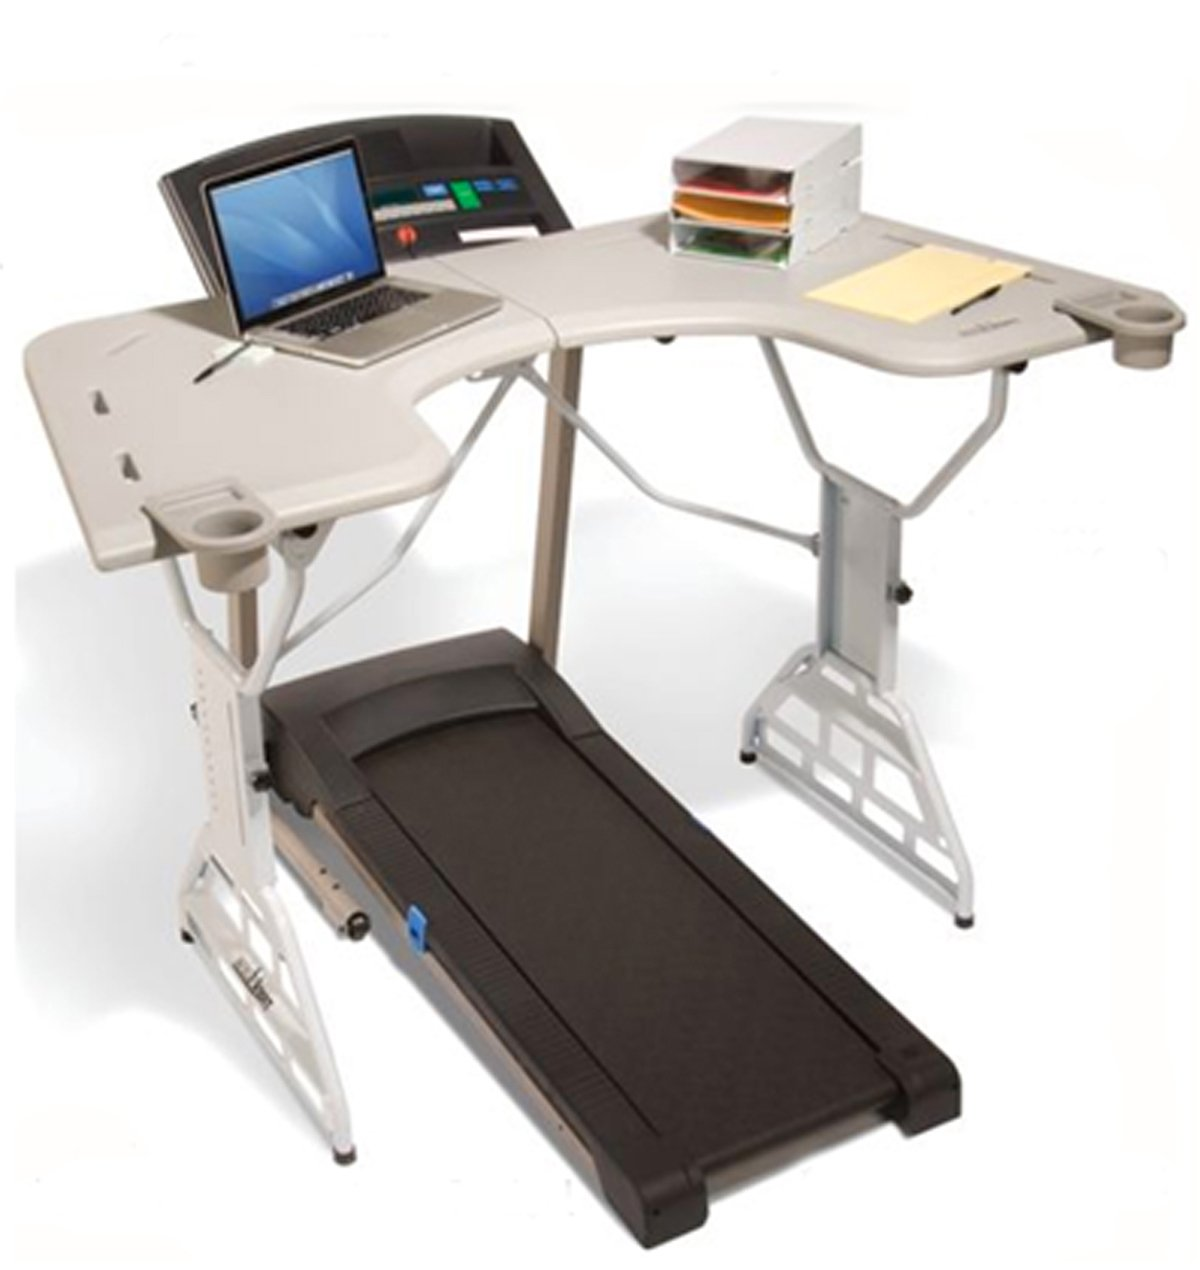 Amazon.com : TrekDesk Treadmill Desk : Exercise Treadmills ...